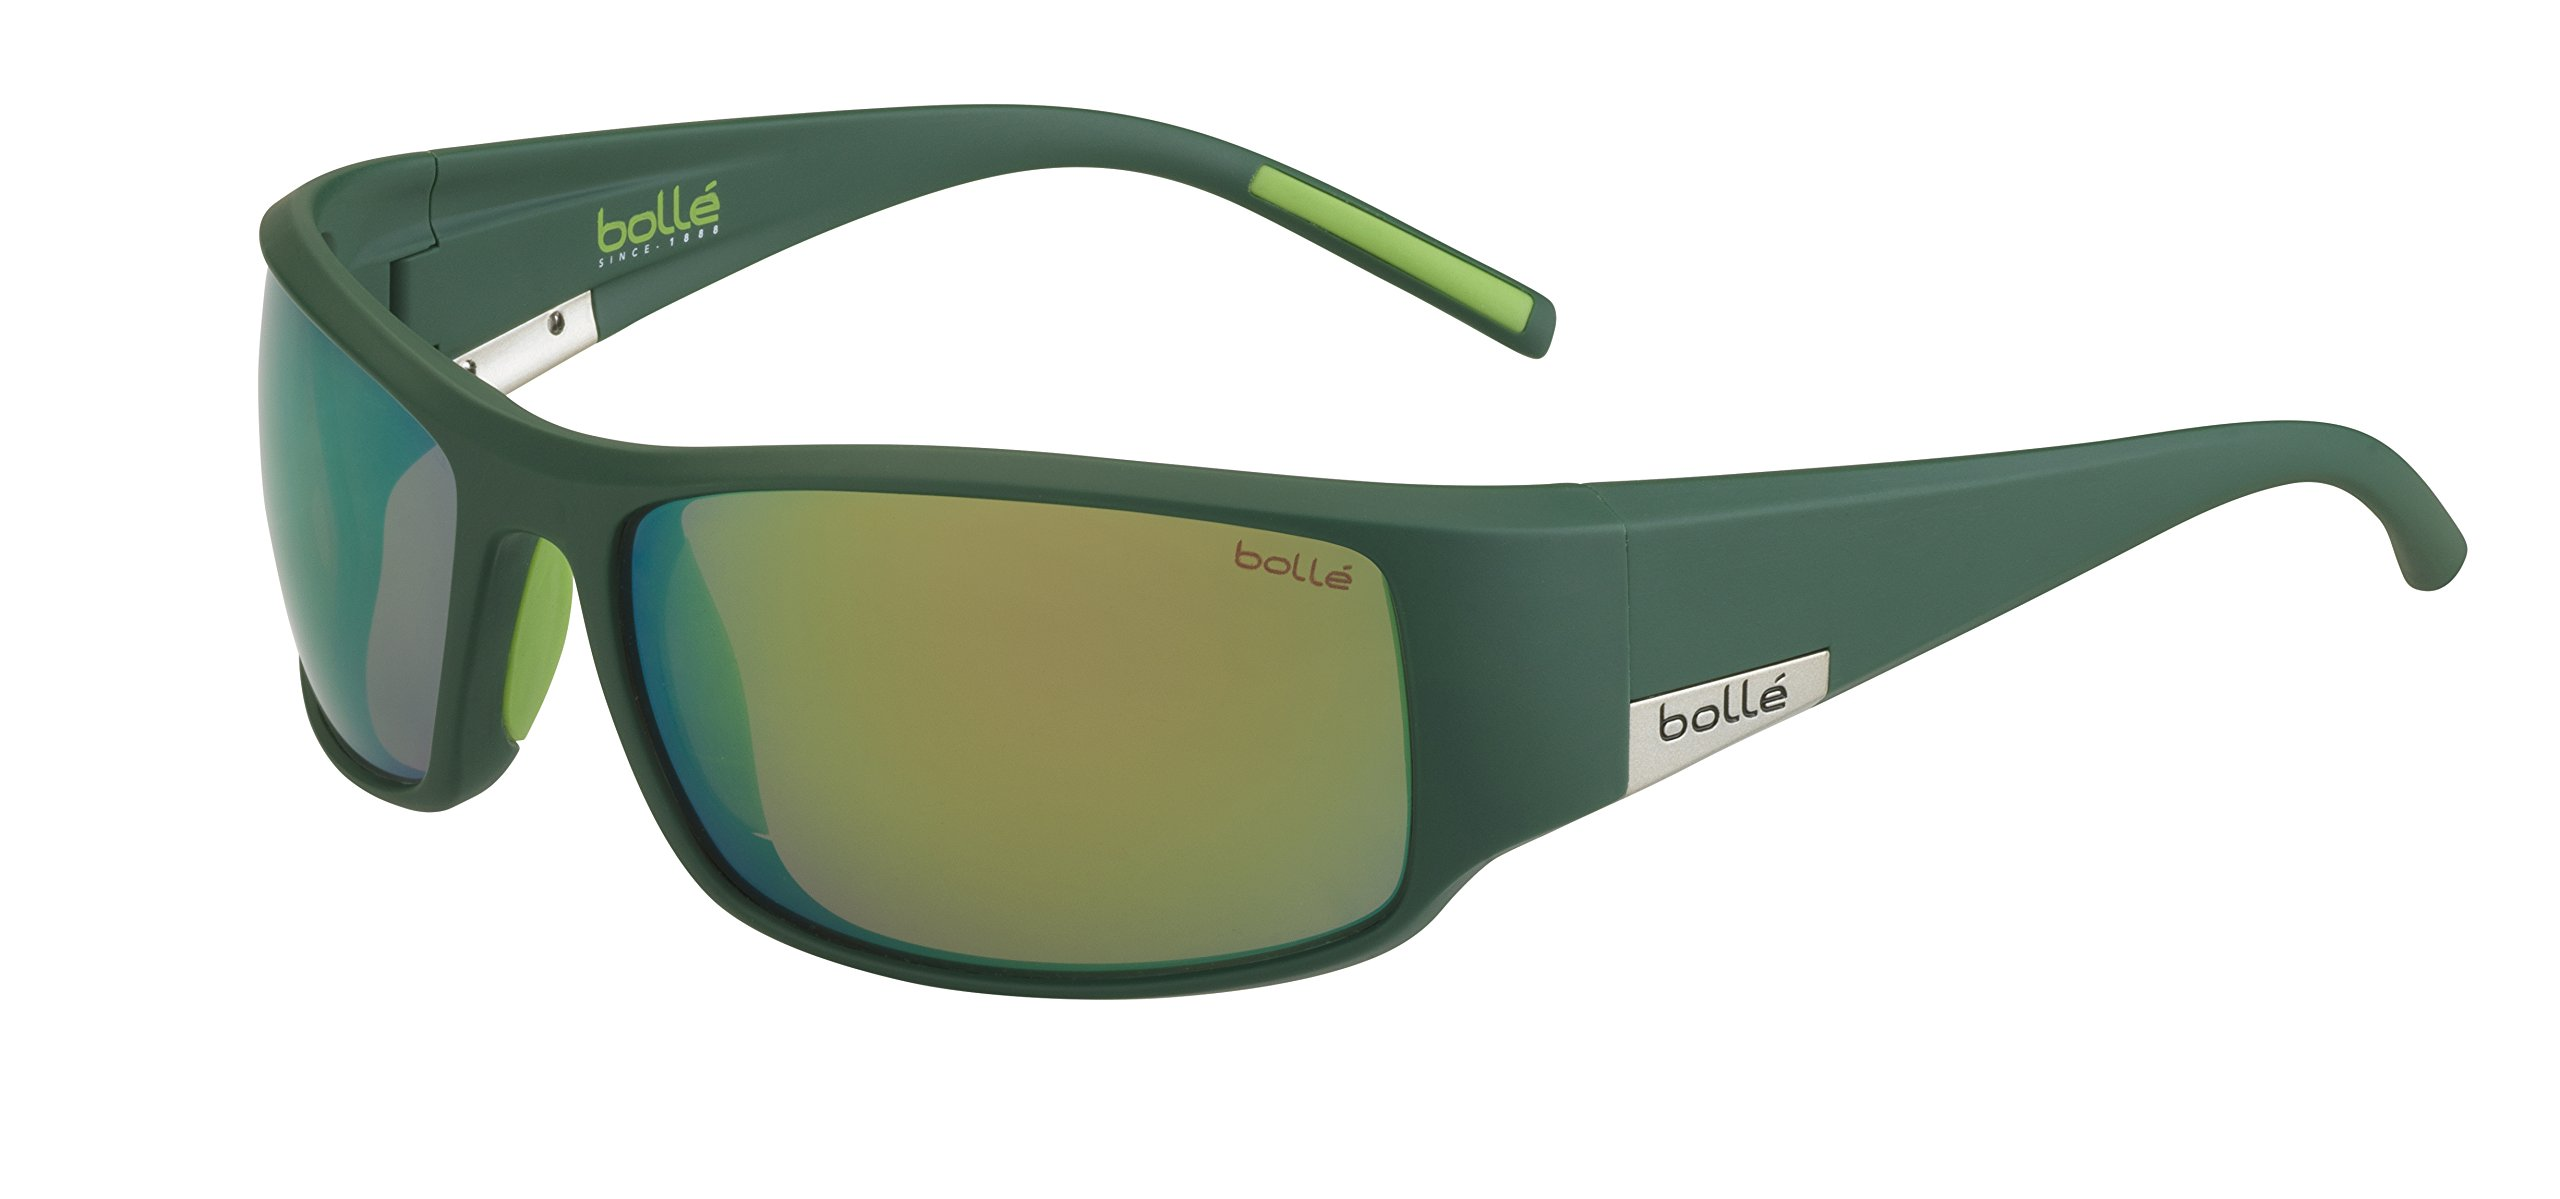 Bolle King Polarized Brown Emerald Oleo AF, Matt Mono Green by Bolle